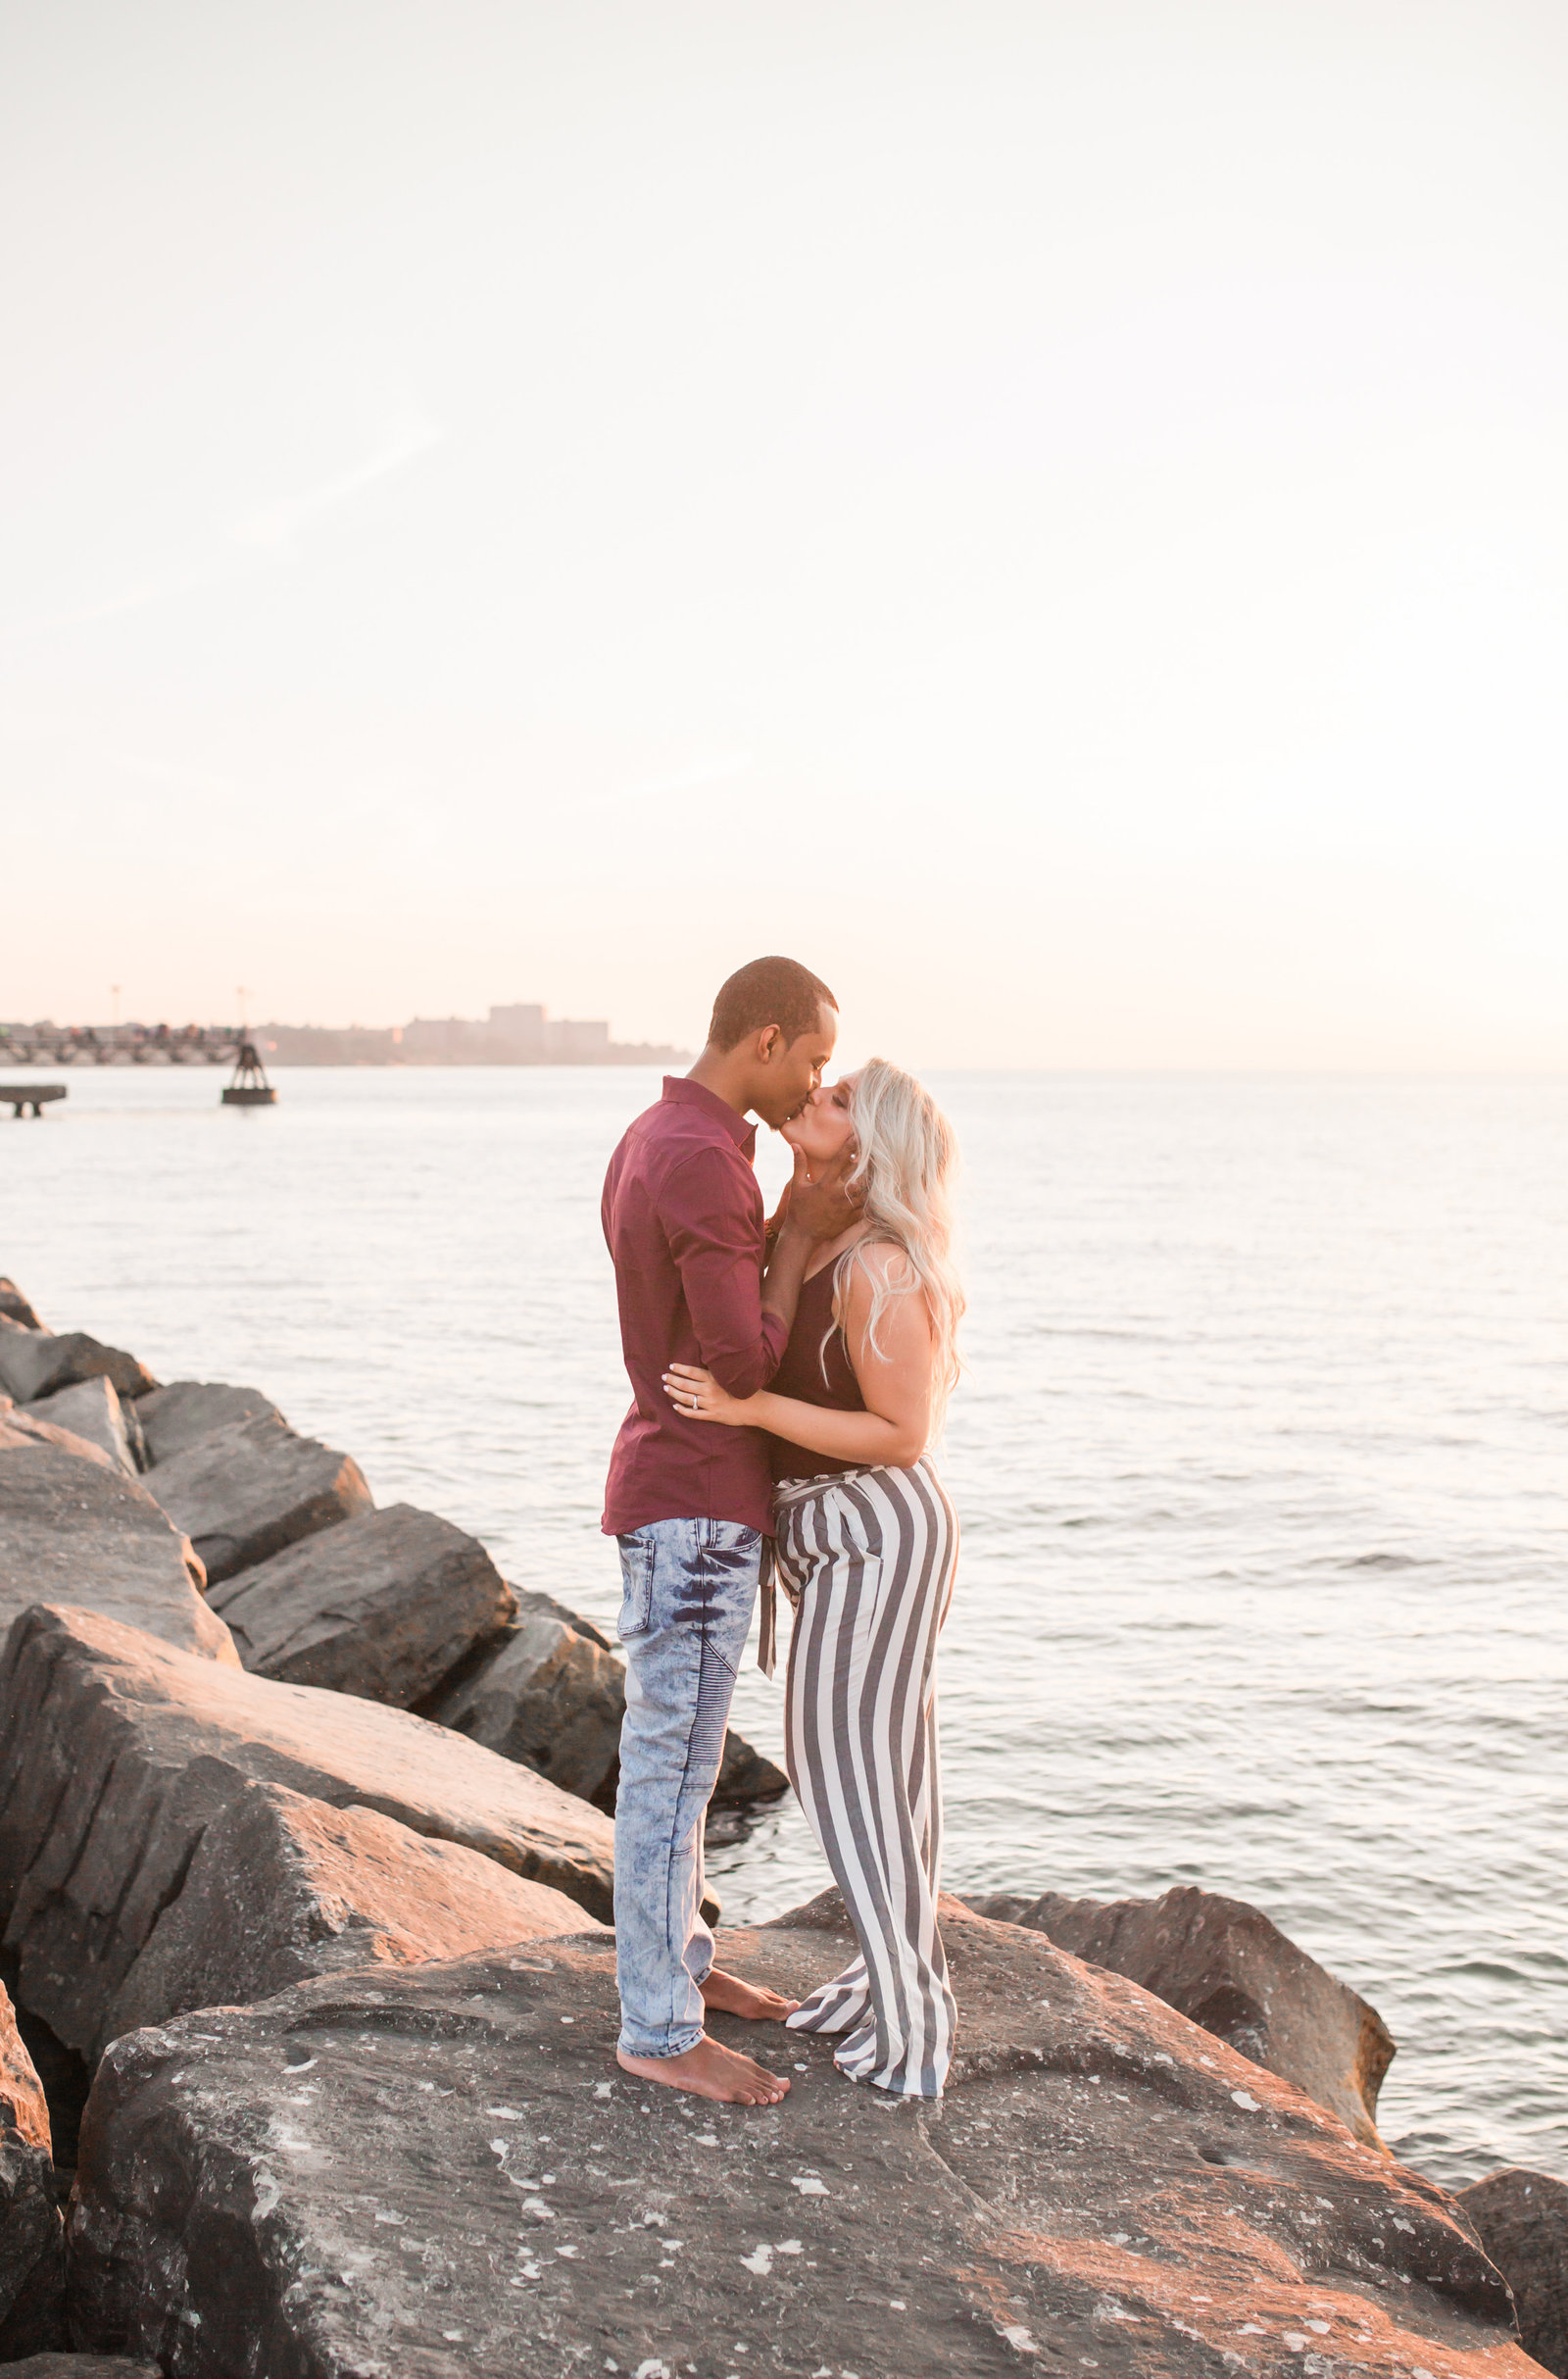 edgewater-beach-engagement-photos-allison-ewing-photography-021-1